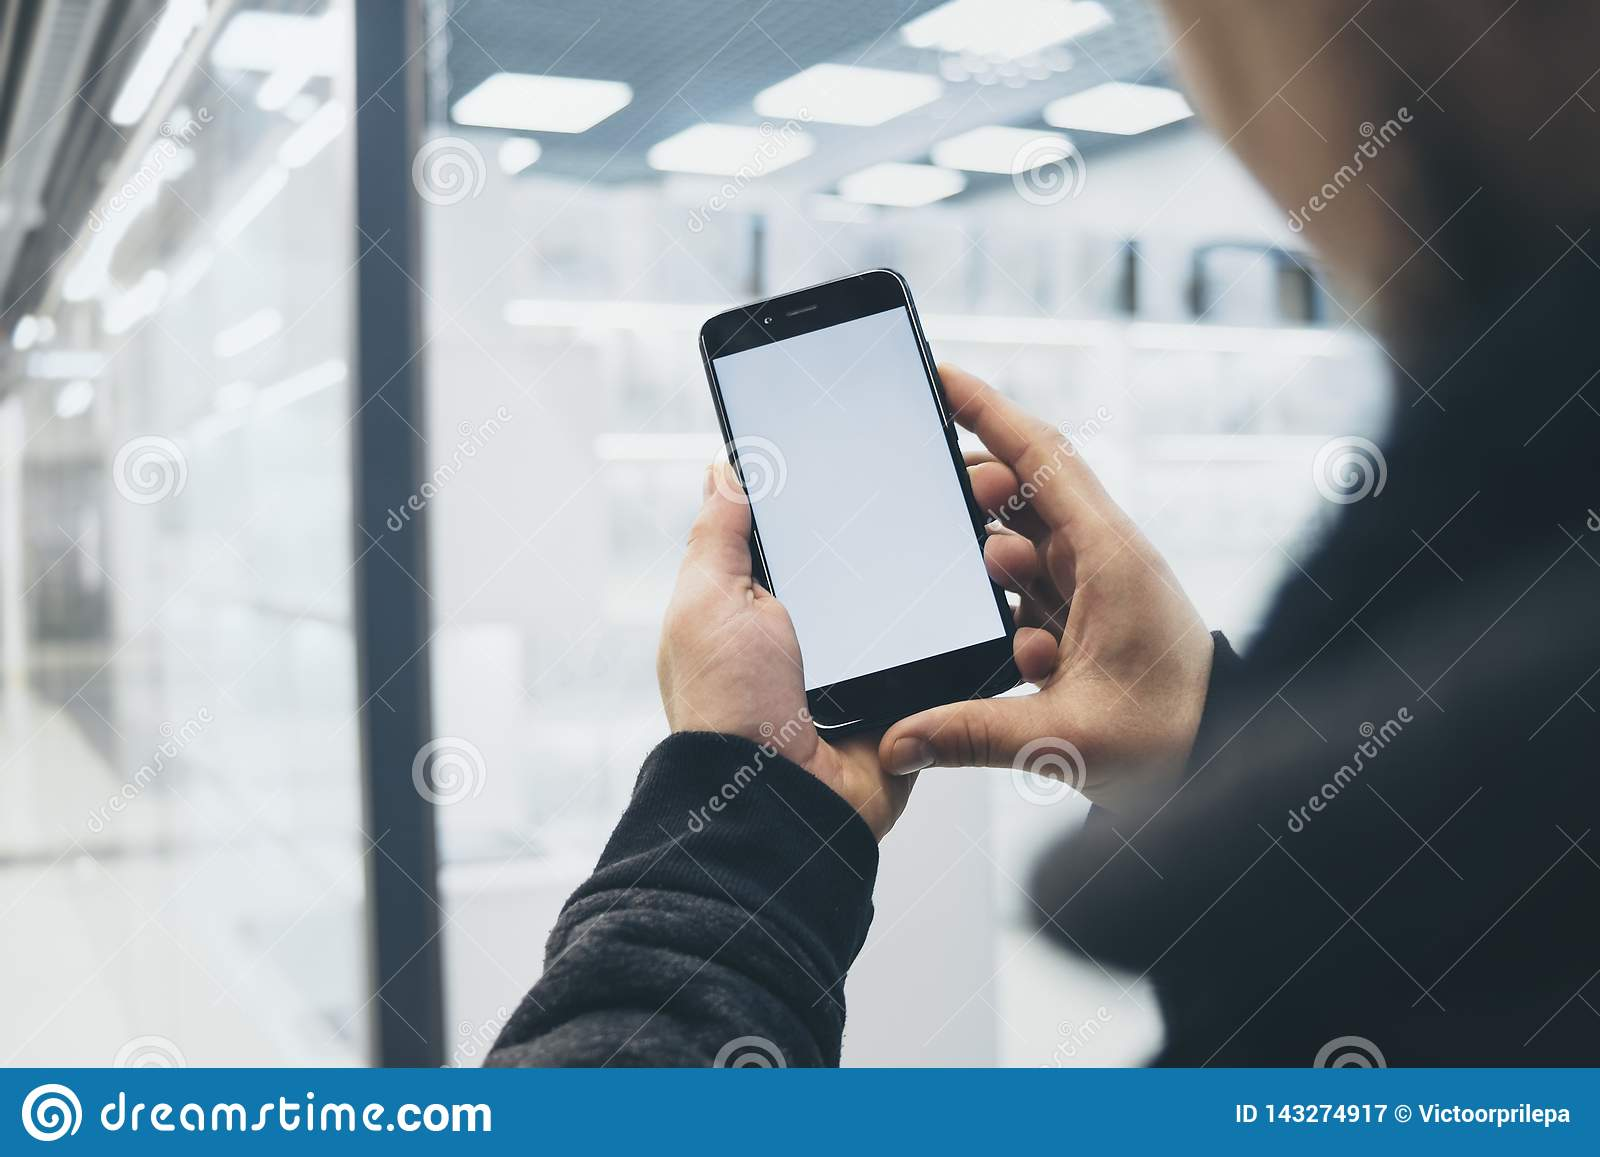 Mock up of a smartphone in hand, on the background of a shopping center.